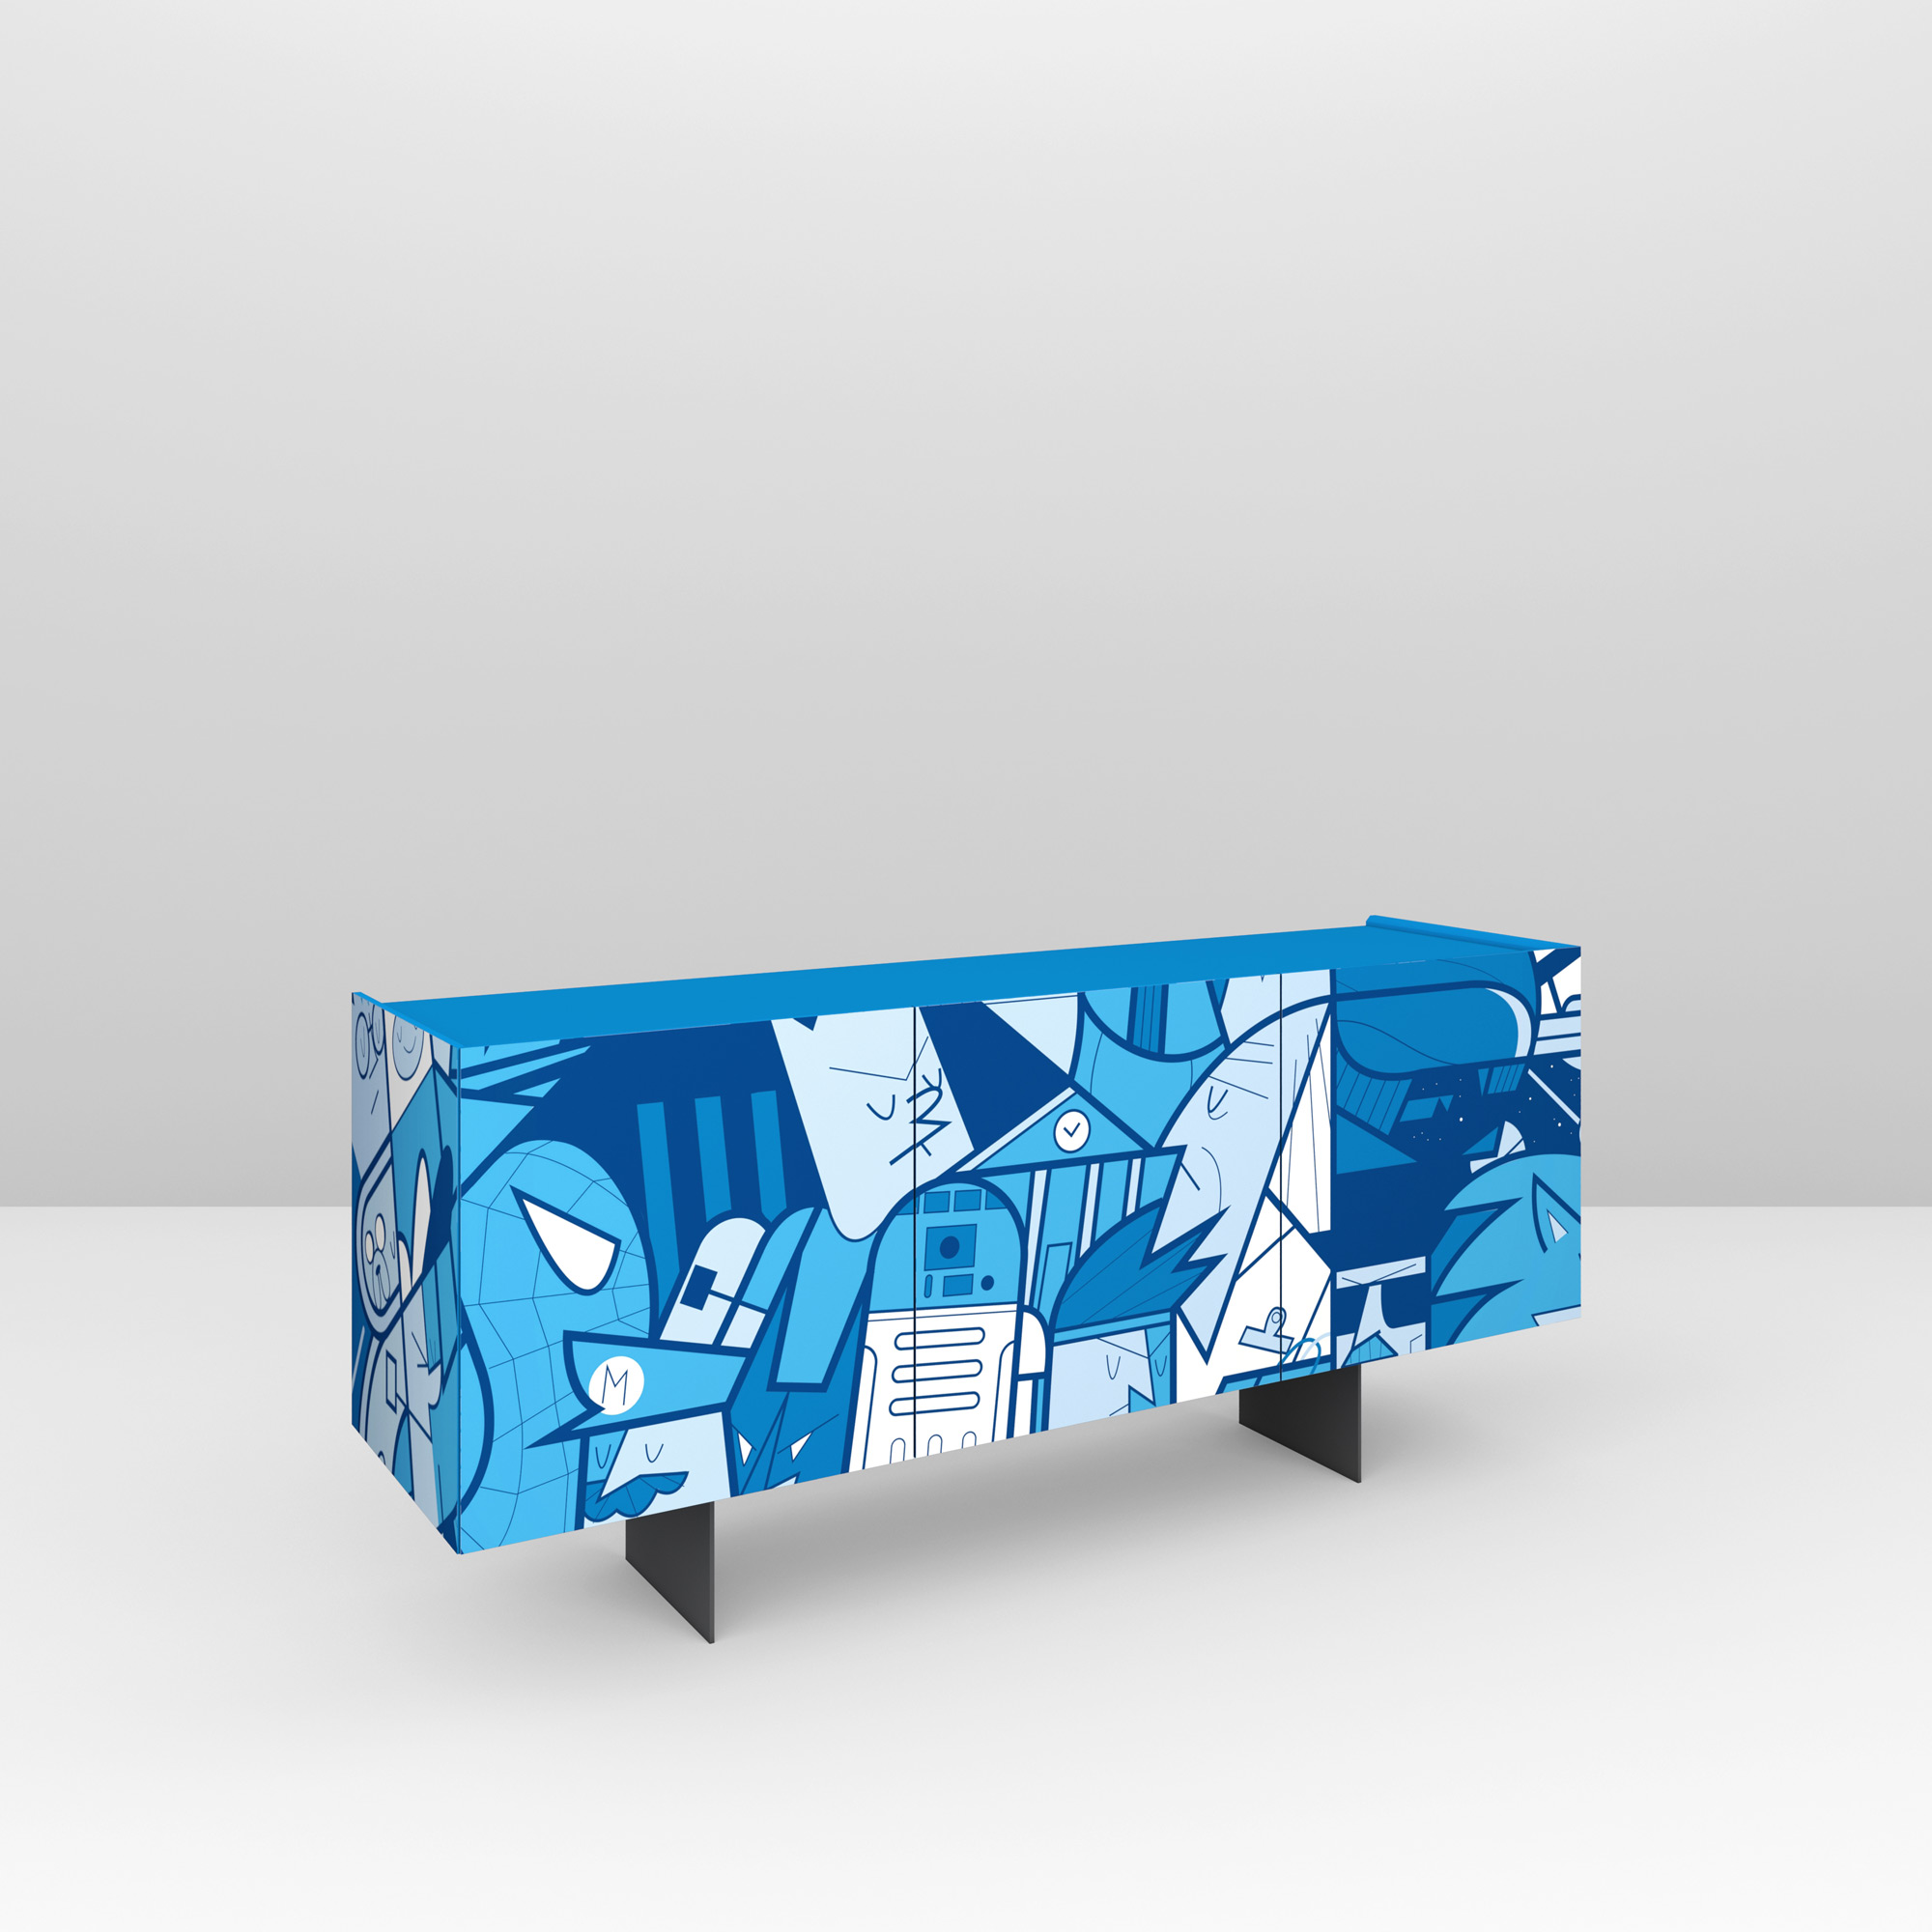 Pictoom Furniture Art Marogna Graphic Illustrator Furnishings Ale Giorgini